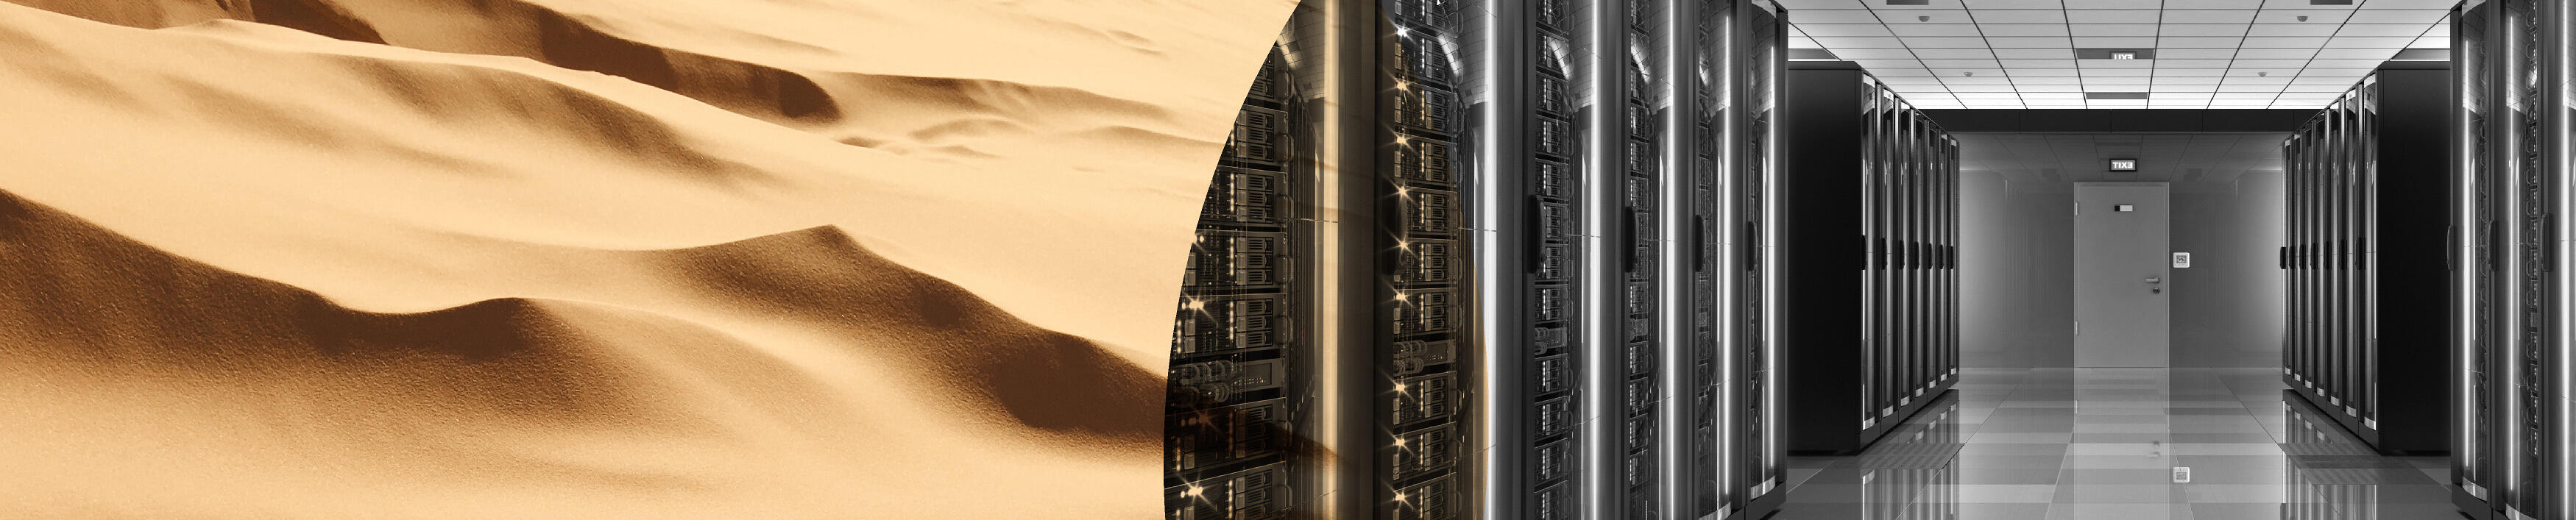 Image of desert overlaid with a data center